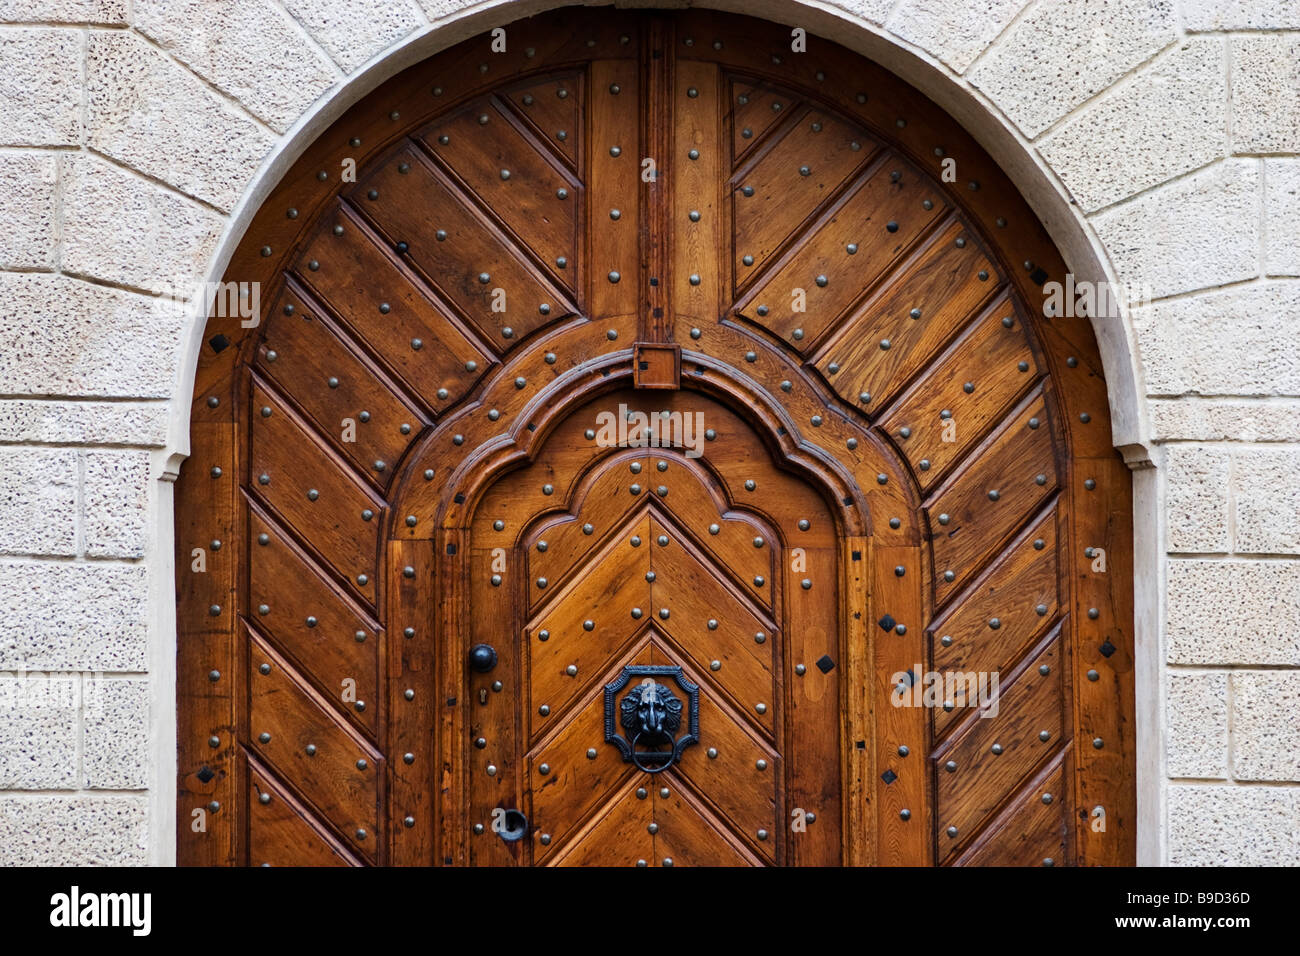 Decorating wicket door images : Big arched medieval house door with wicket gate inside it in ...